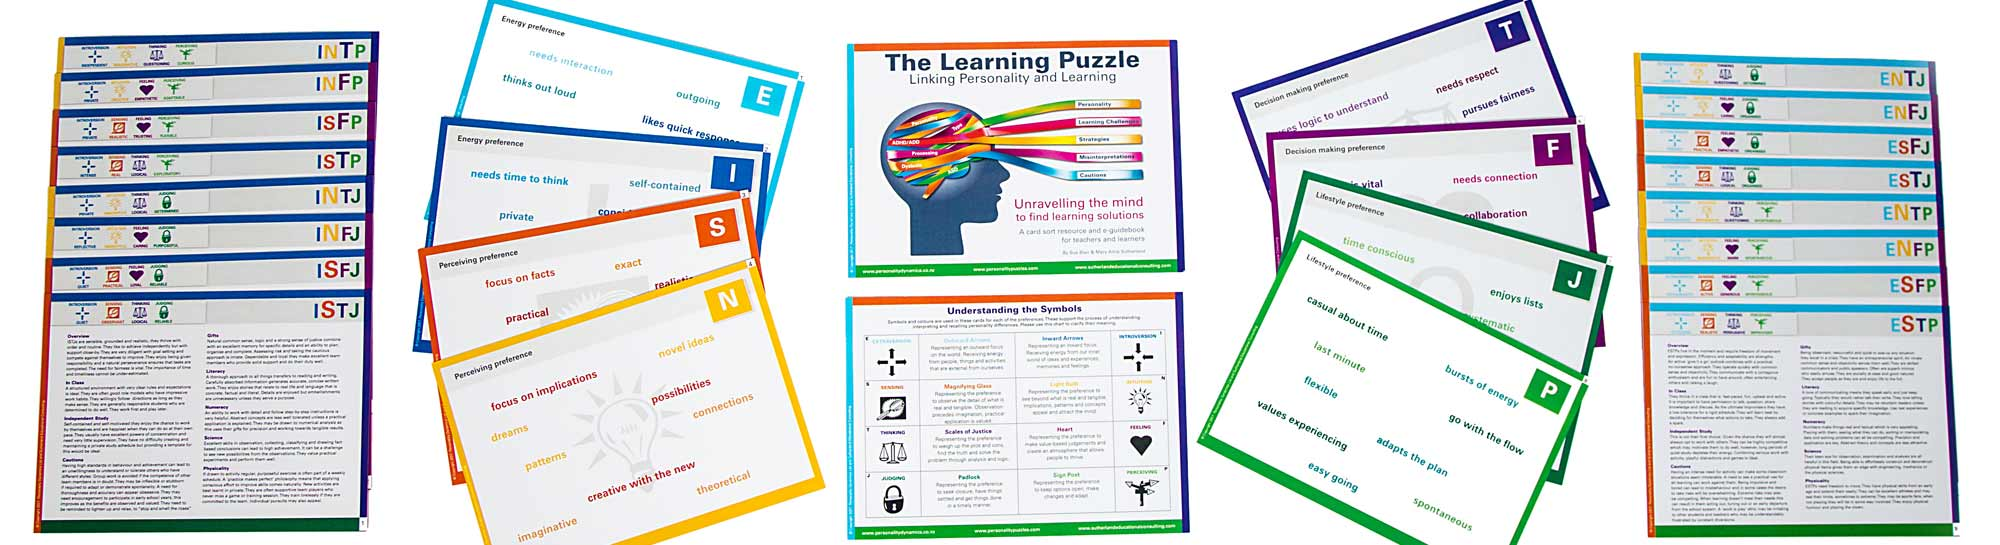 The Learning Puzzle